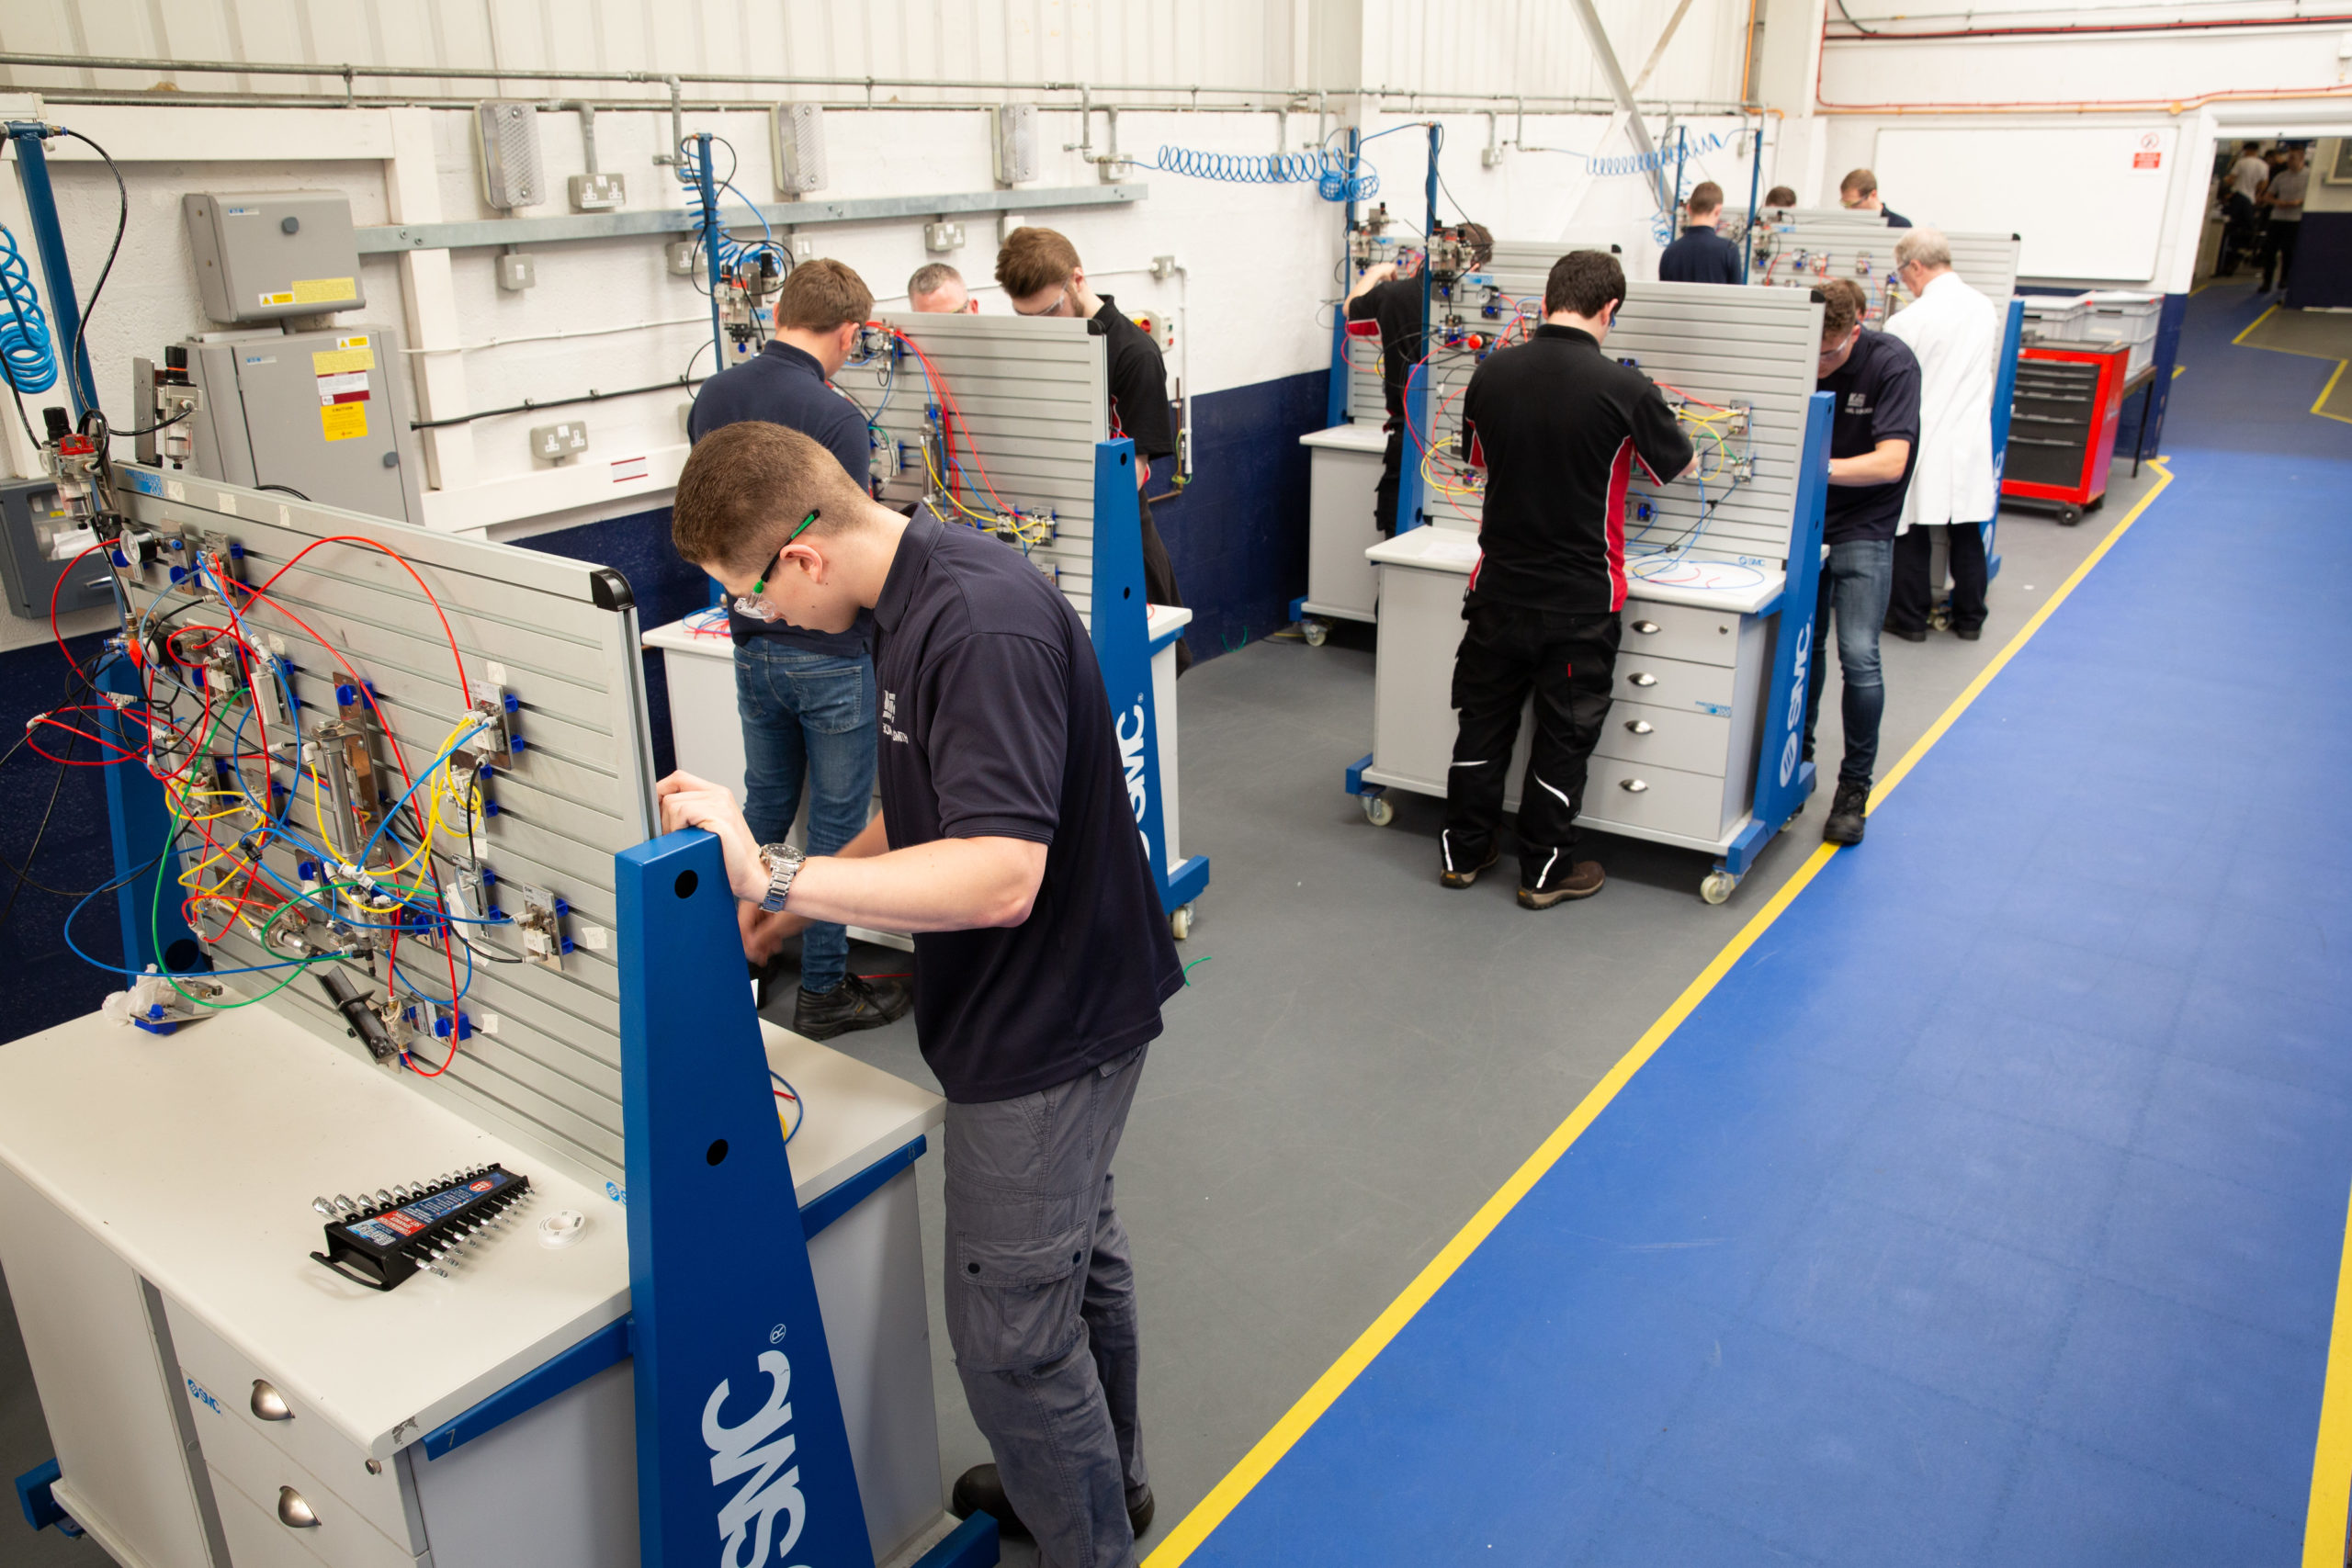 Mechatronics Maintenance Technician apprentices in workshop doing Pneumatic circuit building